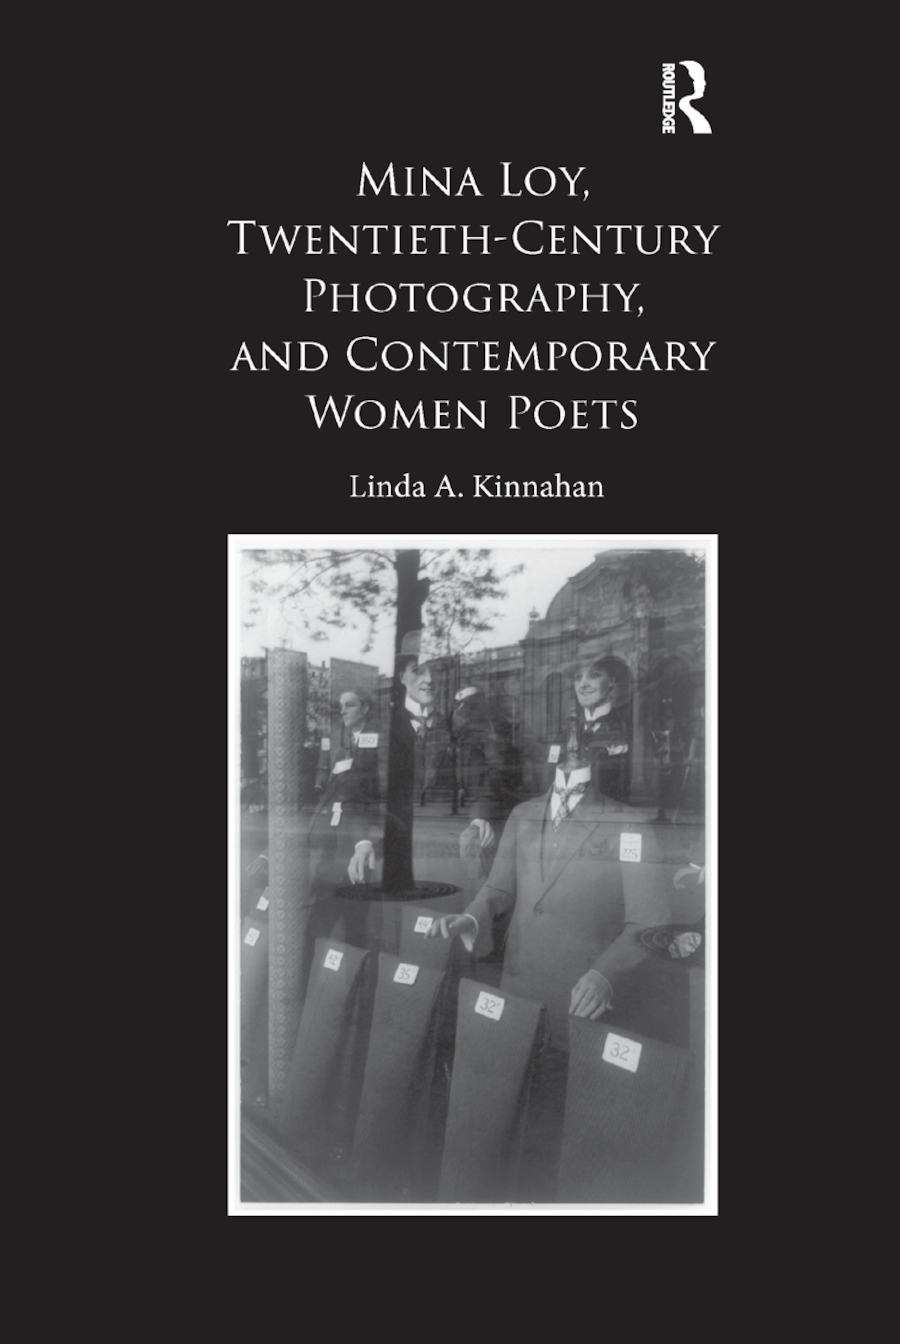 Mina Loy, Twentieth-Century Photography, and Contemporary Women Poets book cover